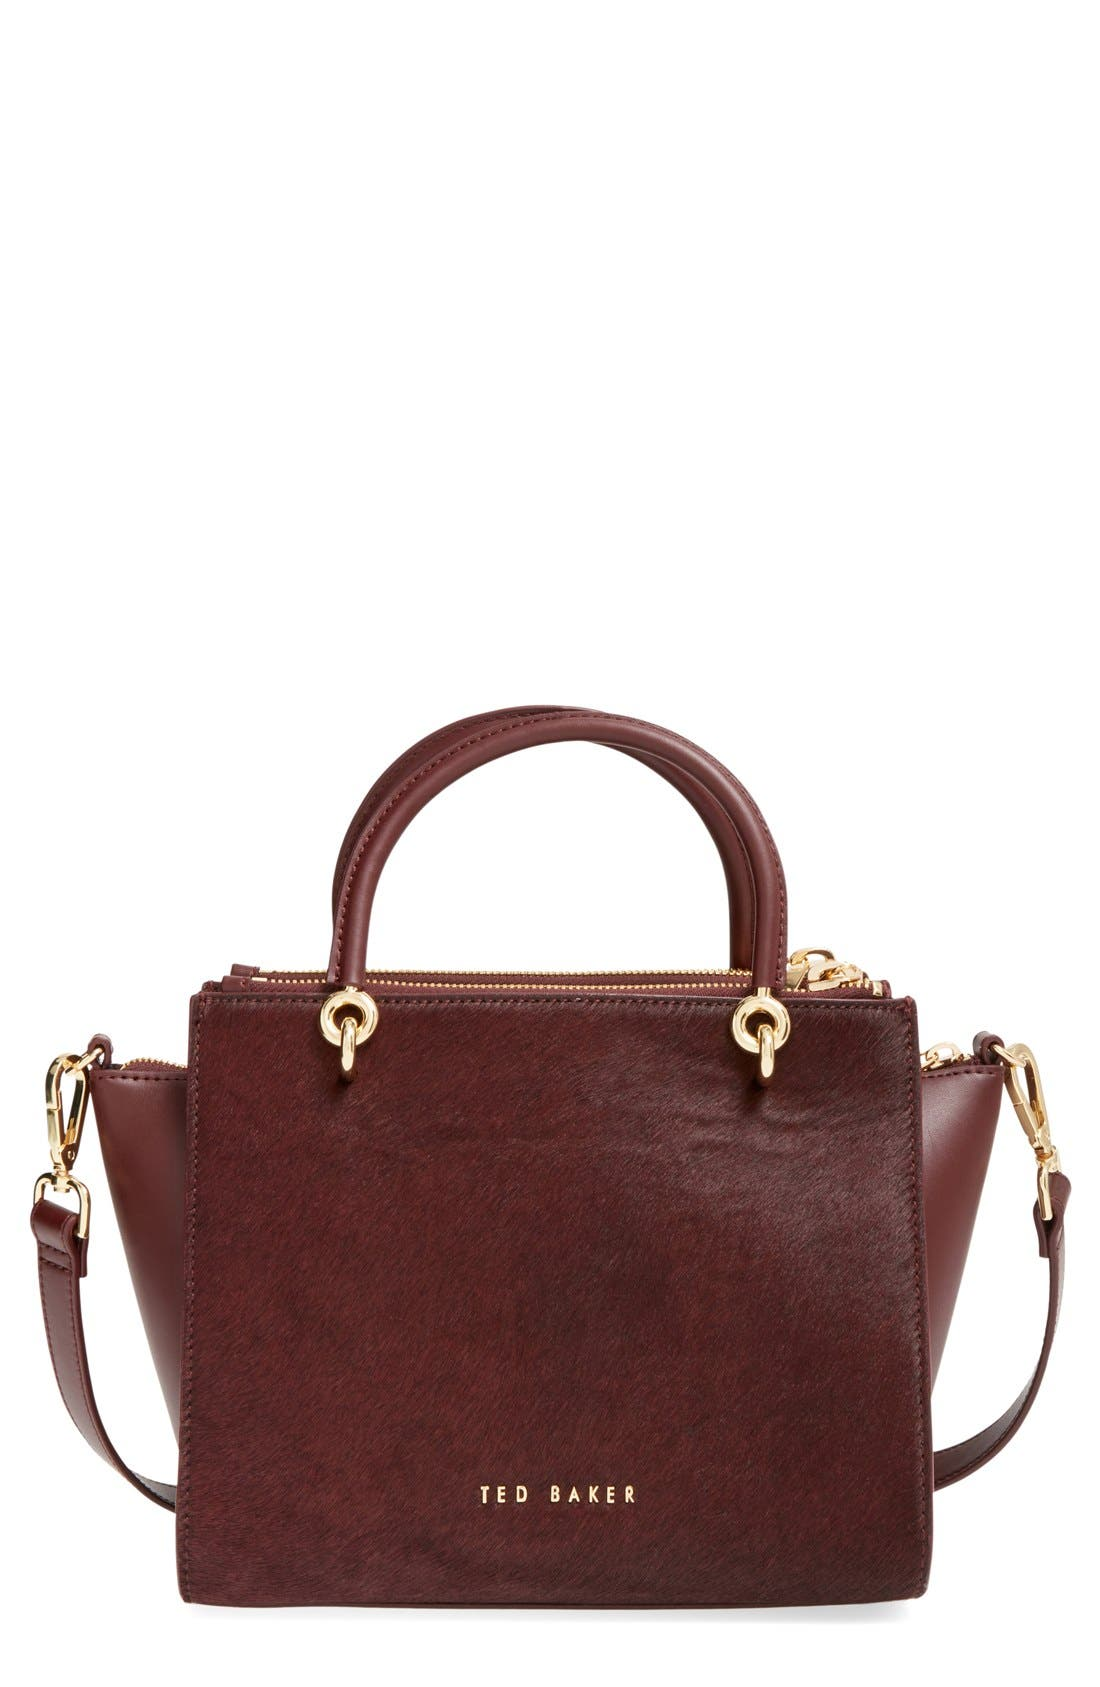 Alternate Image 1 Selected - Ted Baker London 'Haylie' Leather & Genuine Calf Hair Crossbody Tote Bag